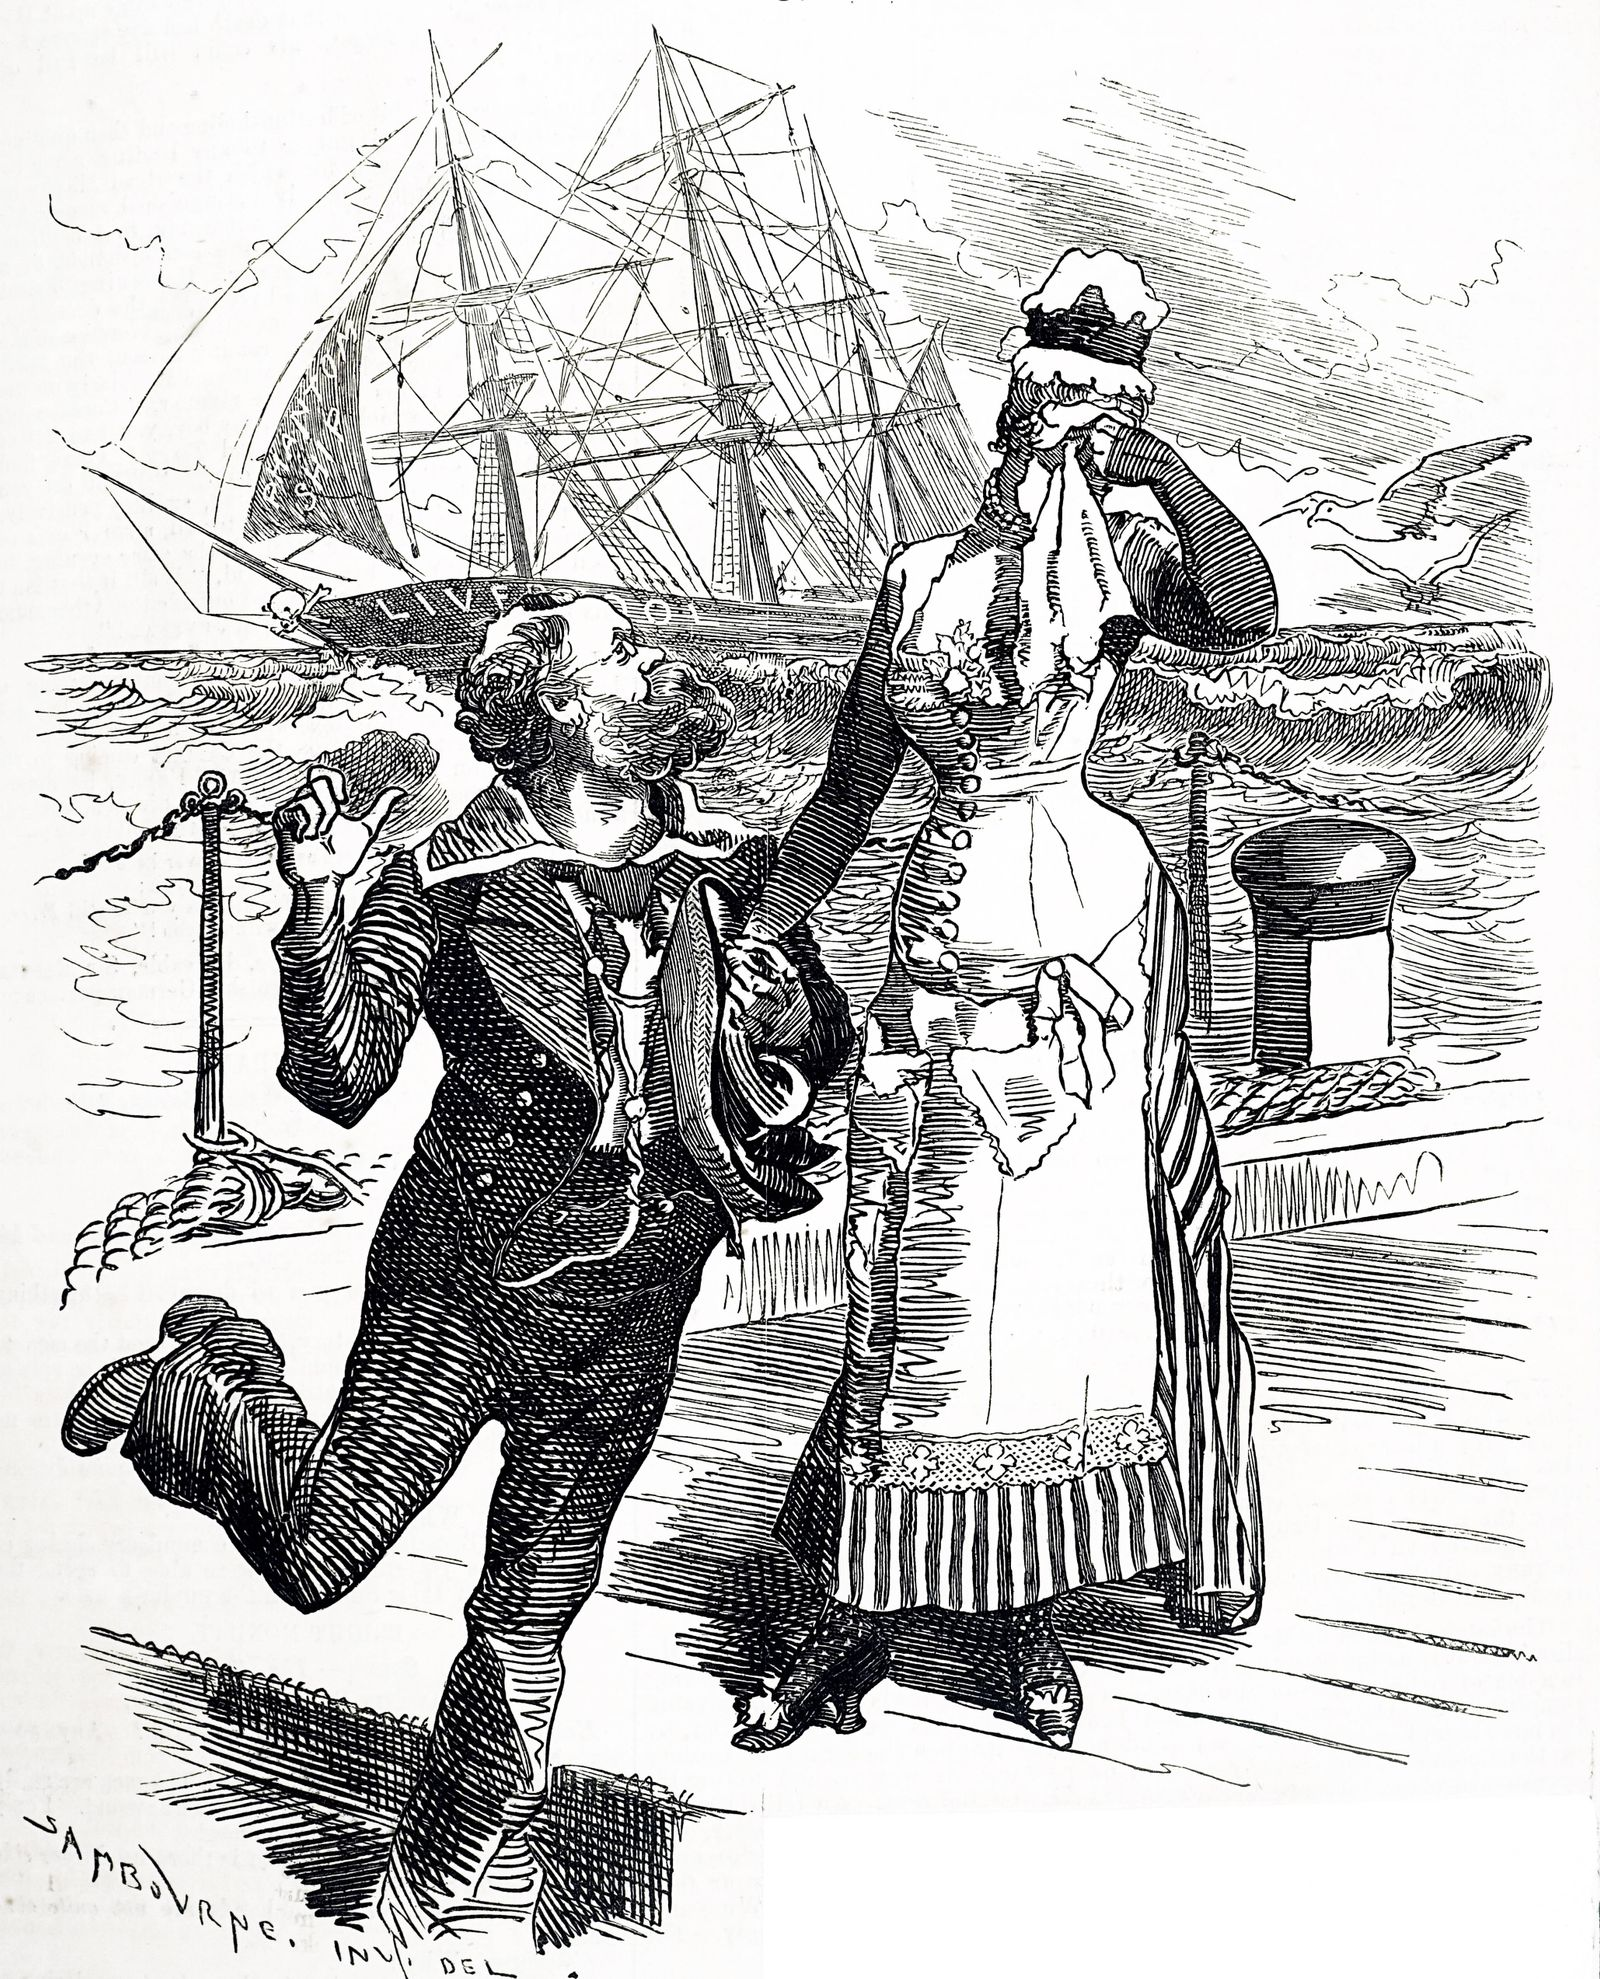 Cartoon commenting on the retirement of Samuel Plimsoll as MP for Derby a seat which he held from 1